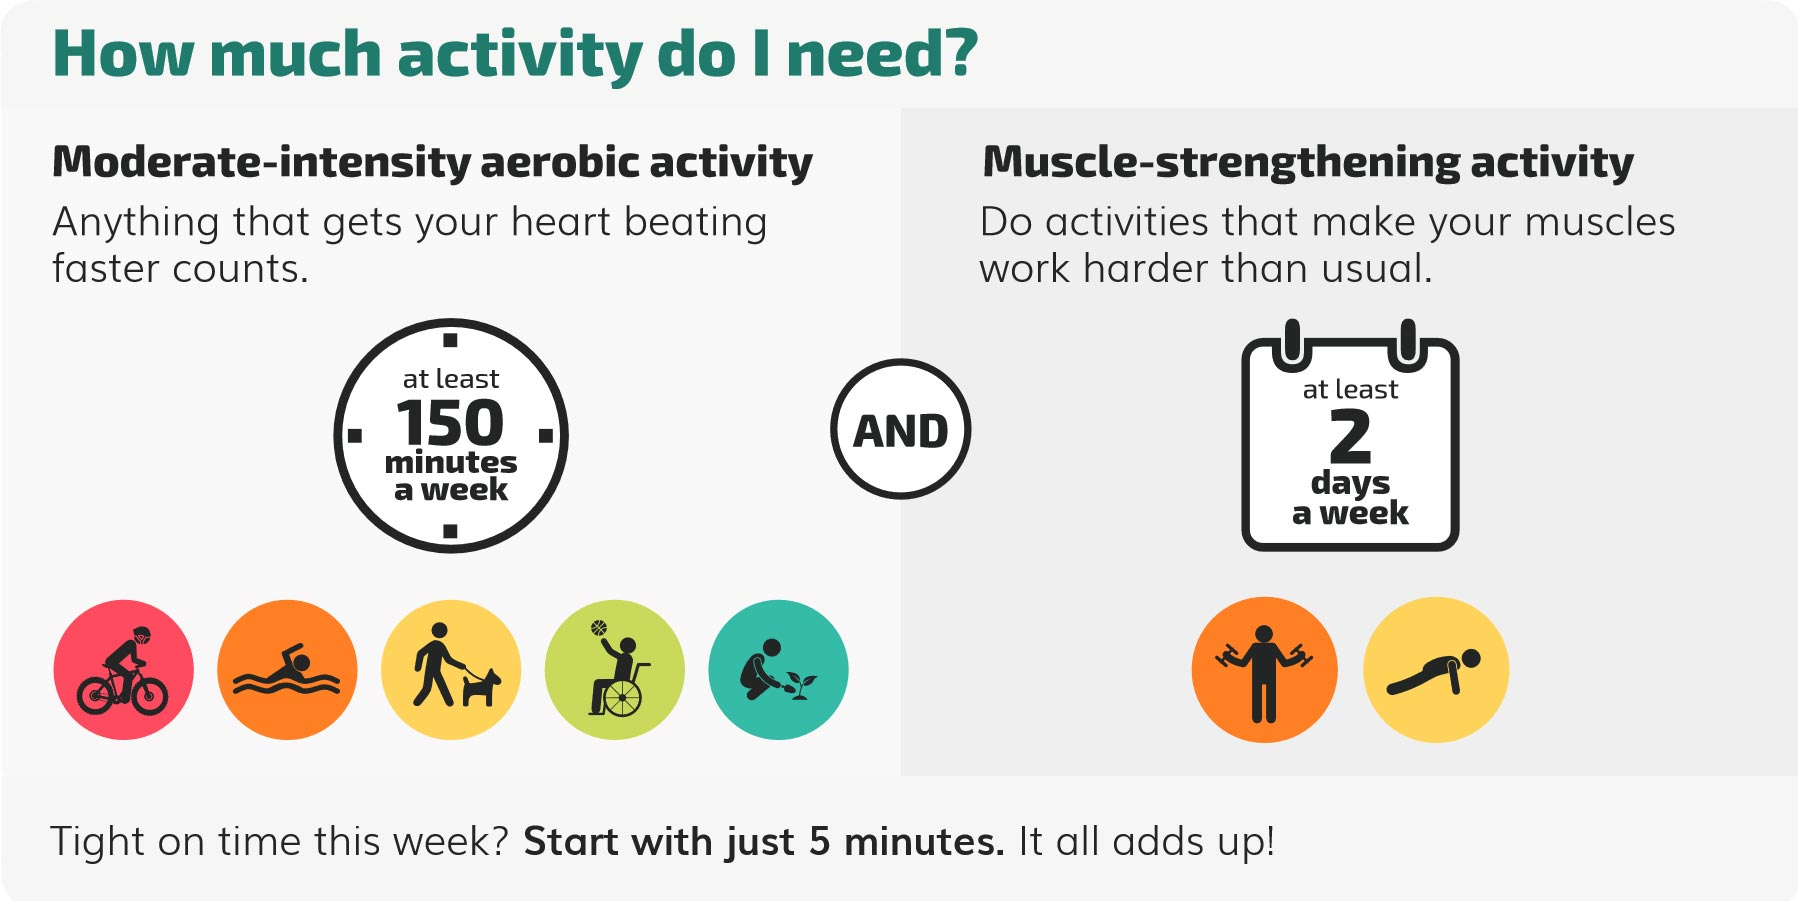 exercise-how-much-activity-do-i-need